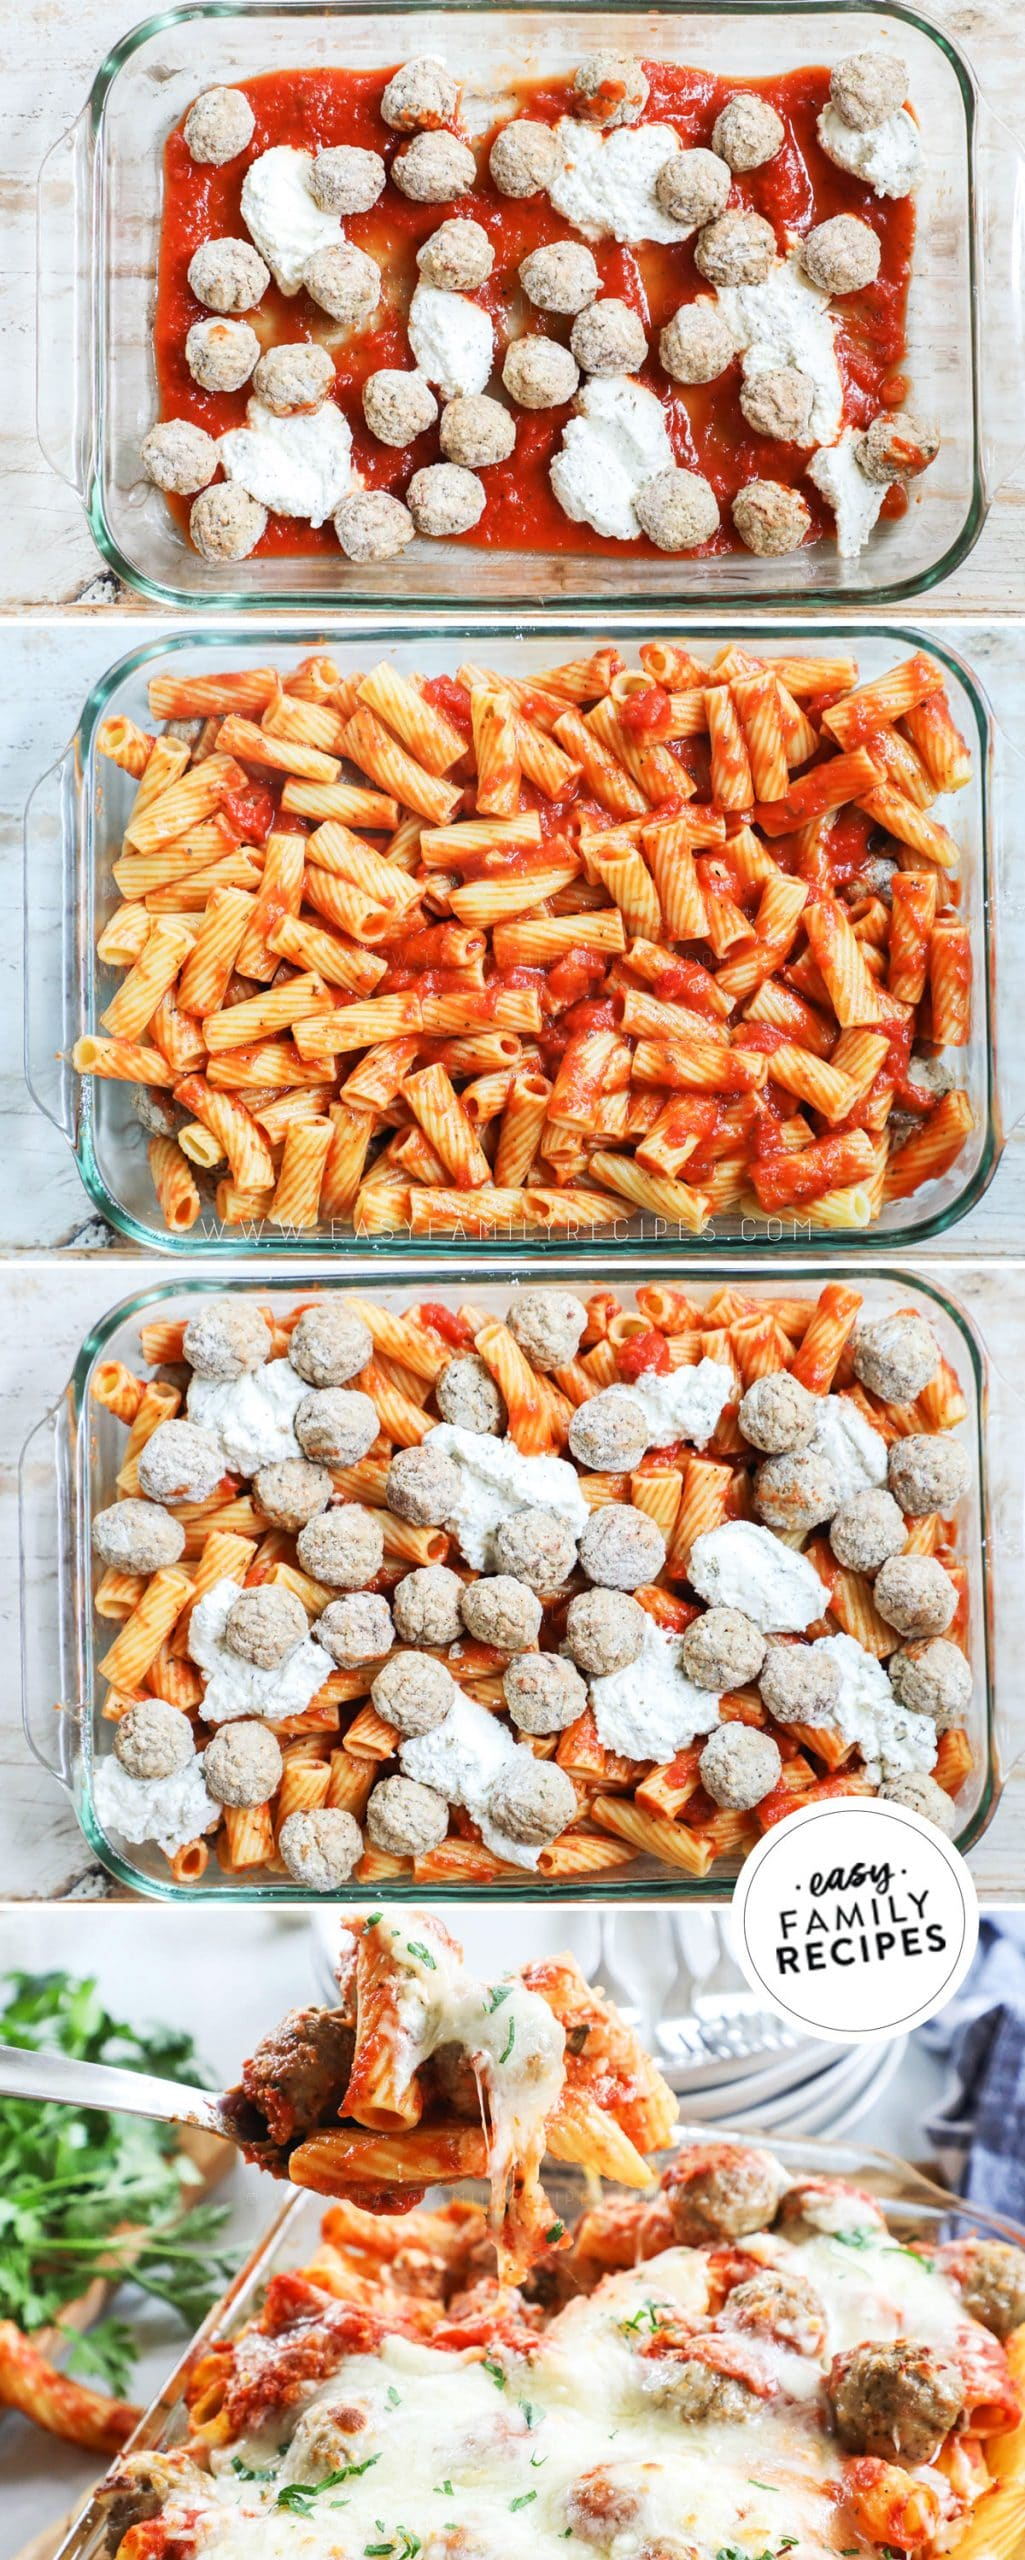 Process photos for how to make Meatball Pasta Bake Casserole1. Add sauce, meatballs, and cheese to casserole dish. 2. Mix pasta with sauce and add to casserole. 3. Top with more sauce, meatballs and cheese. 4. Bake until hot throughout.